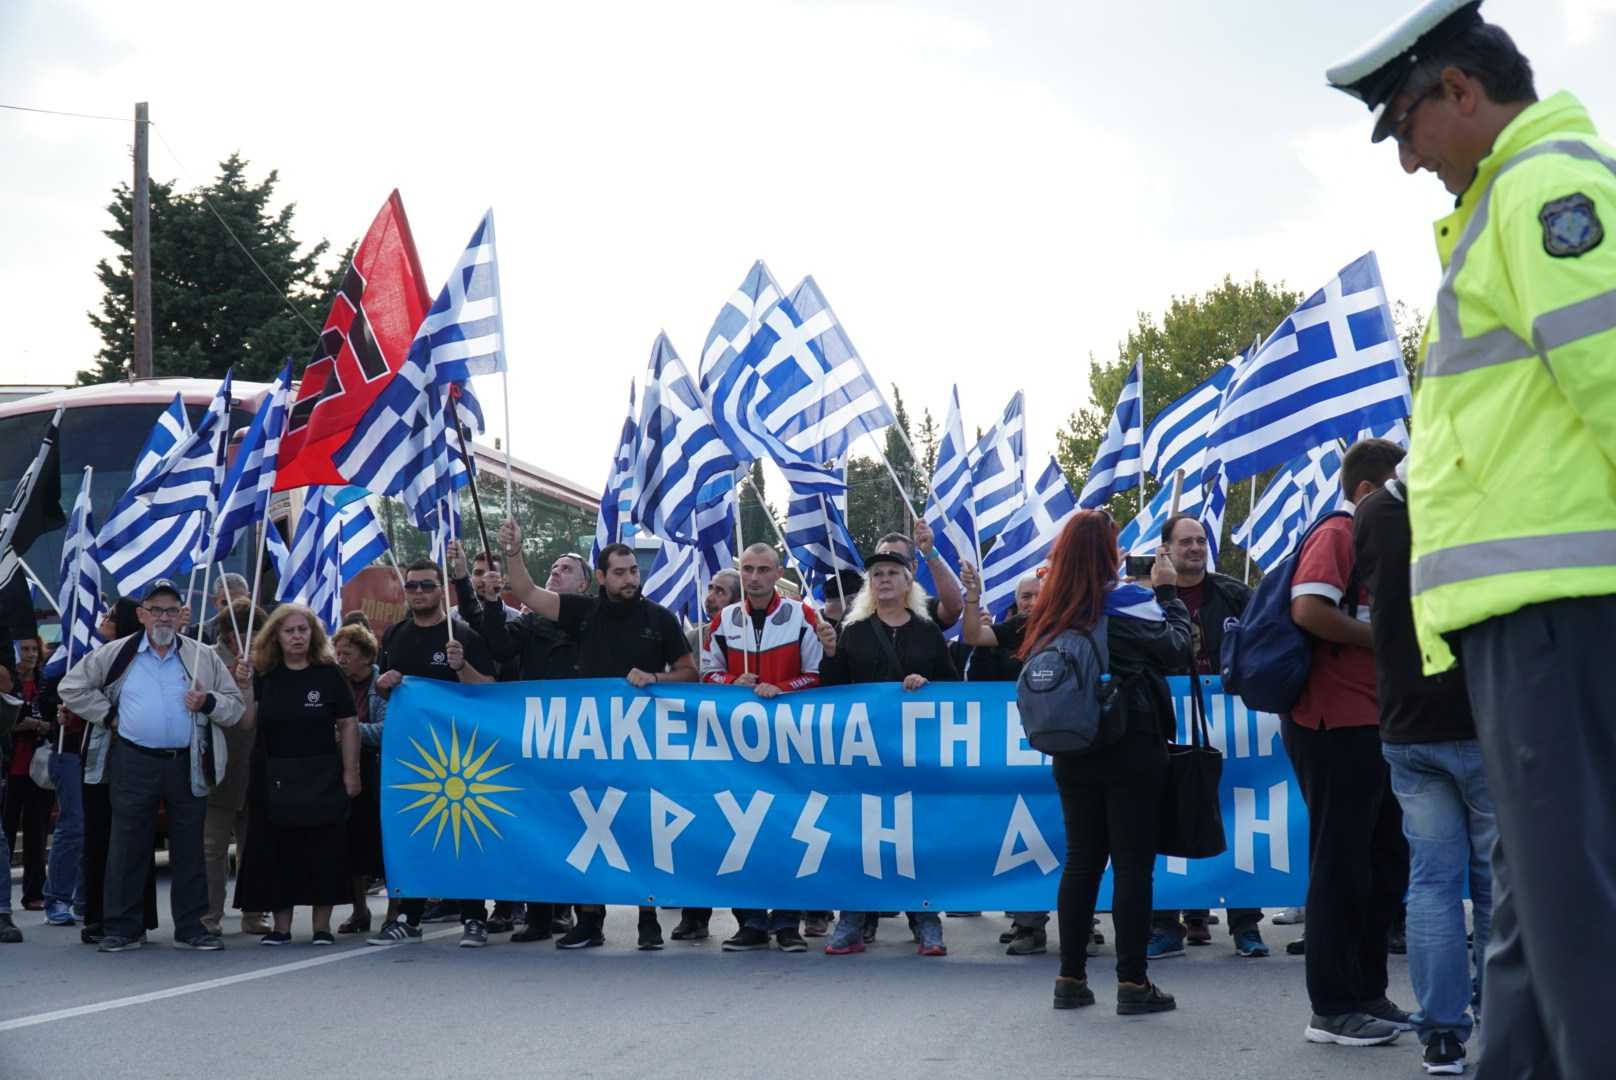 EFA recalls the European Commission to ensure respect for minorities in Greece